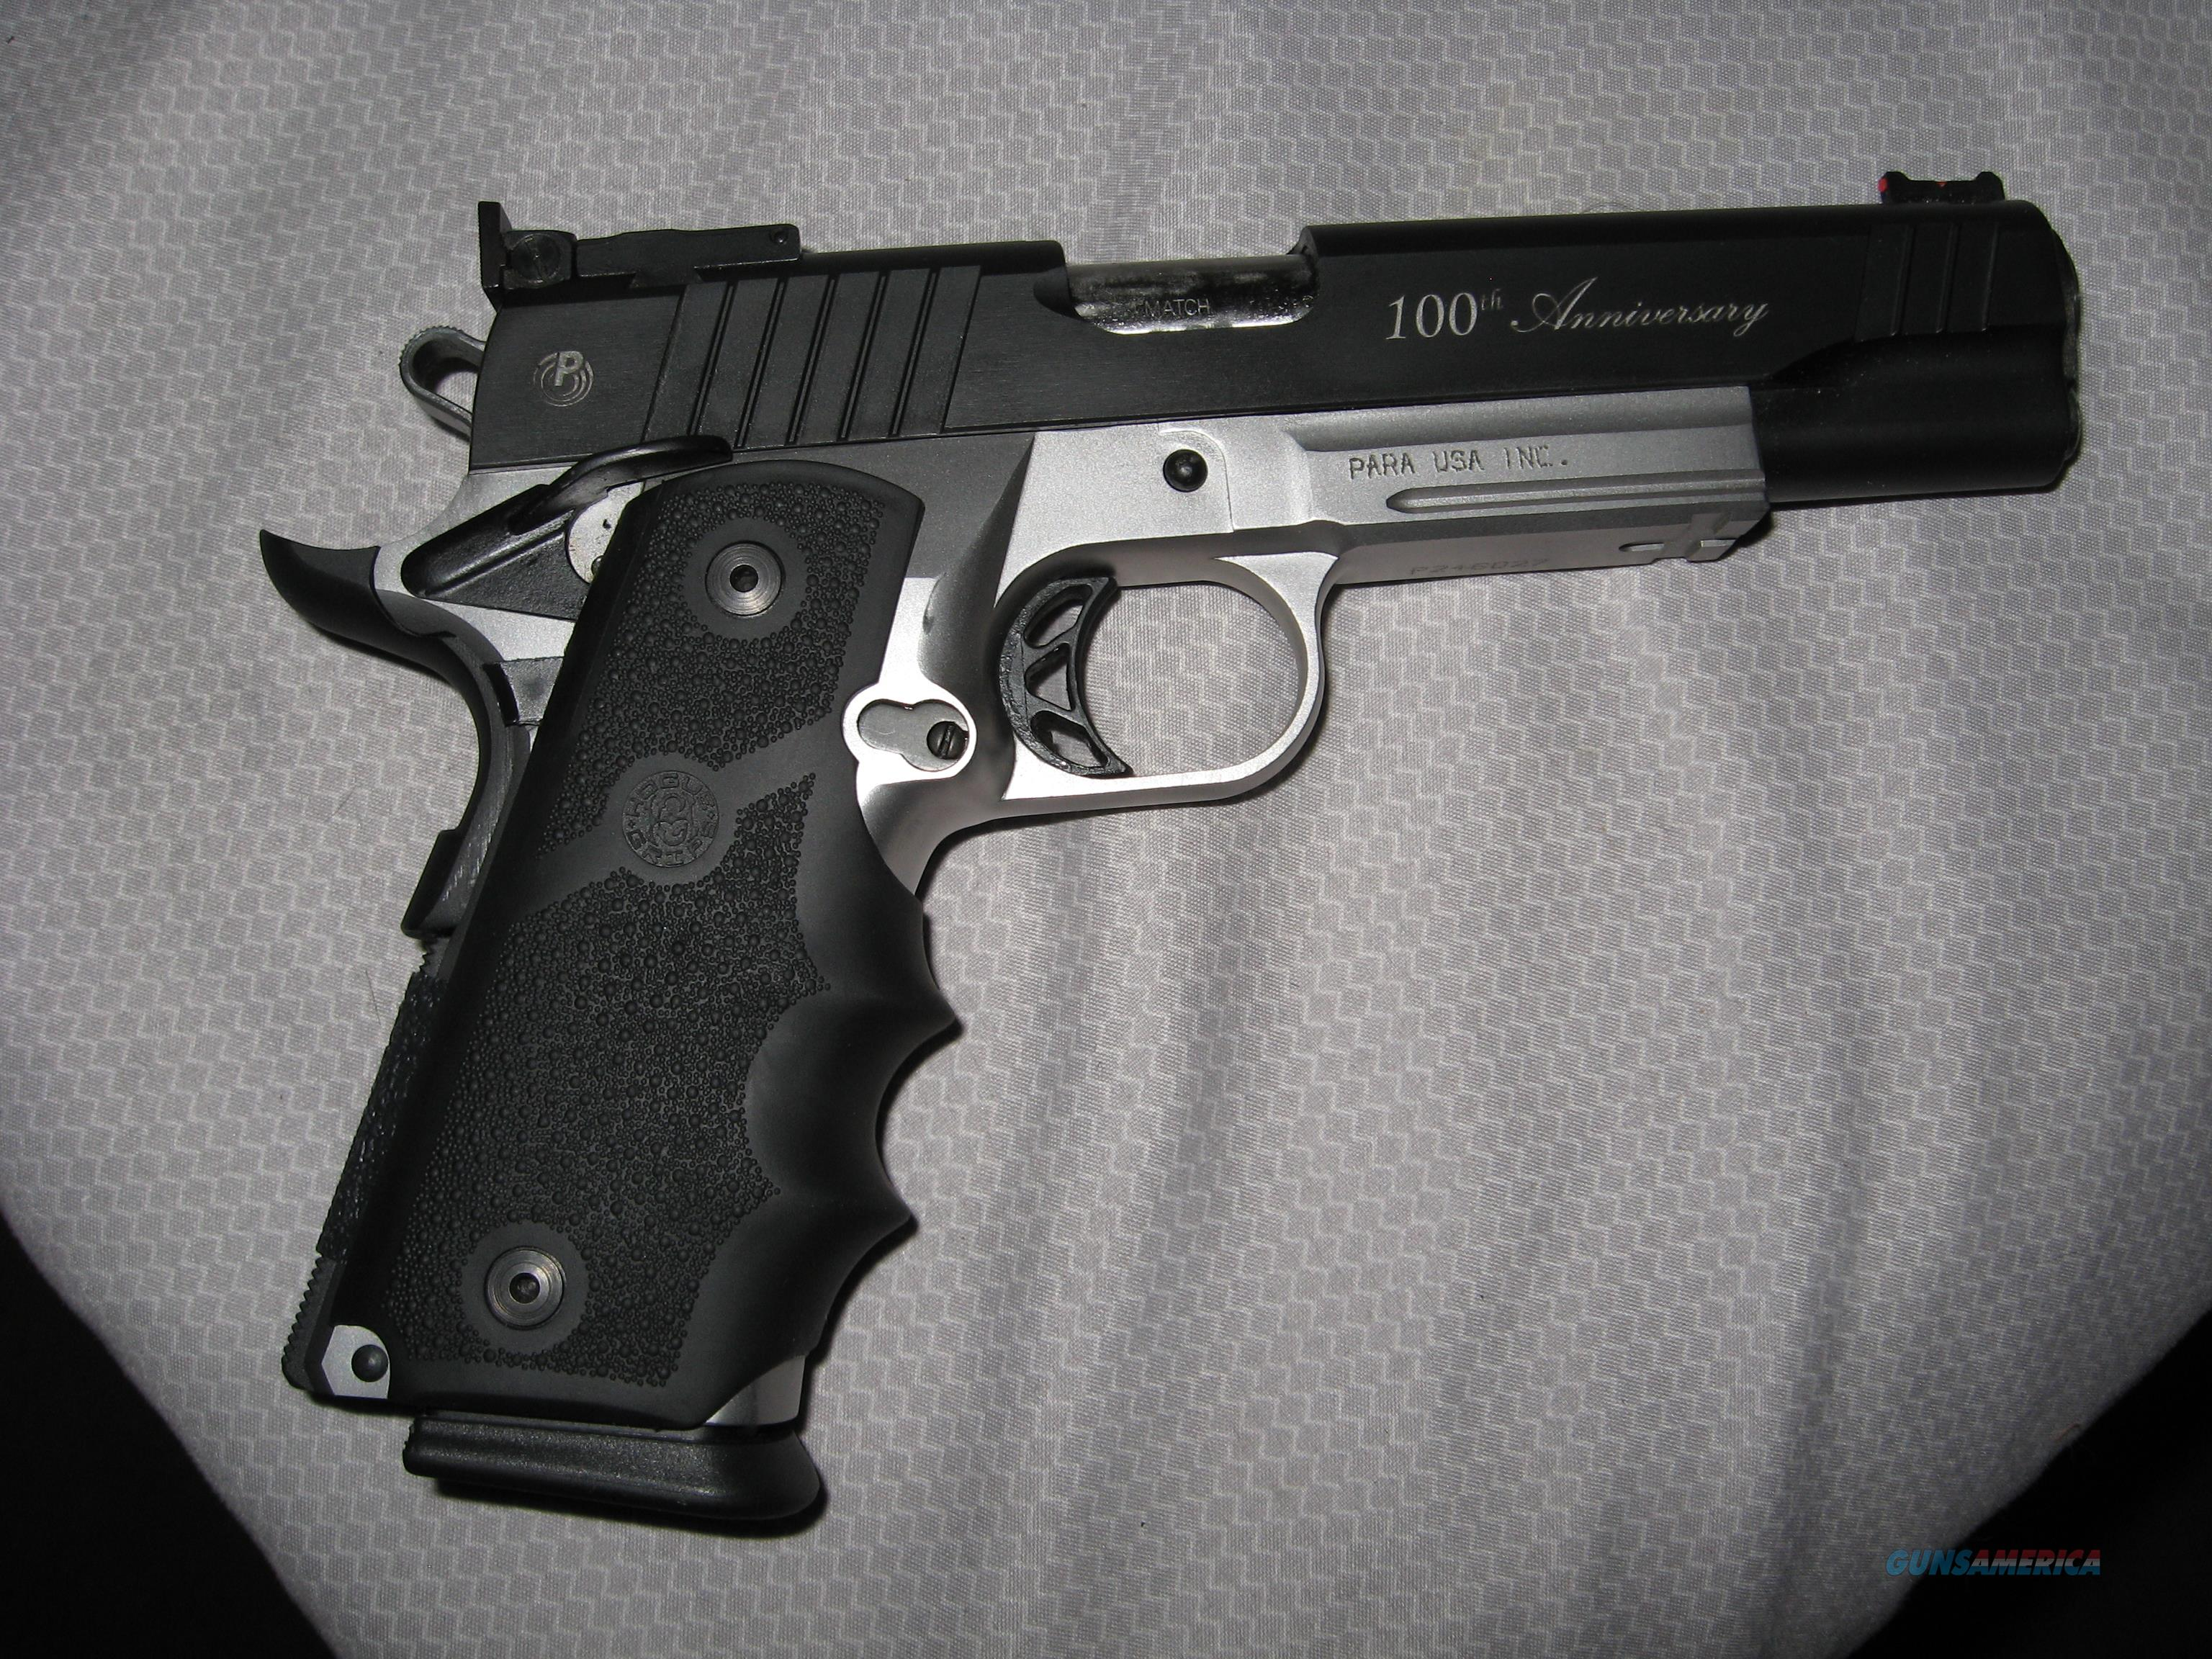 Para Ordnance Pxt 100th Anniversary 1911 For Sale